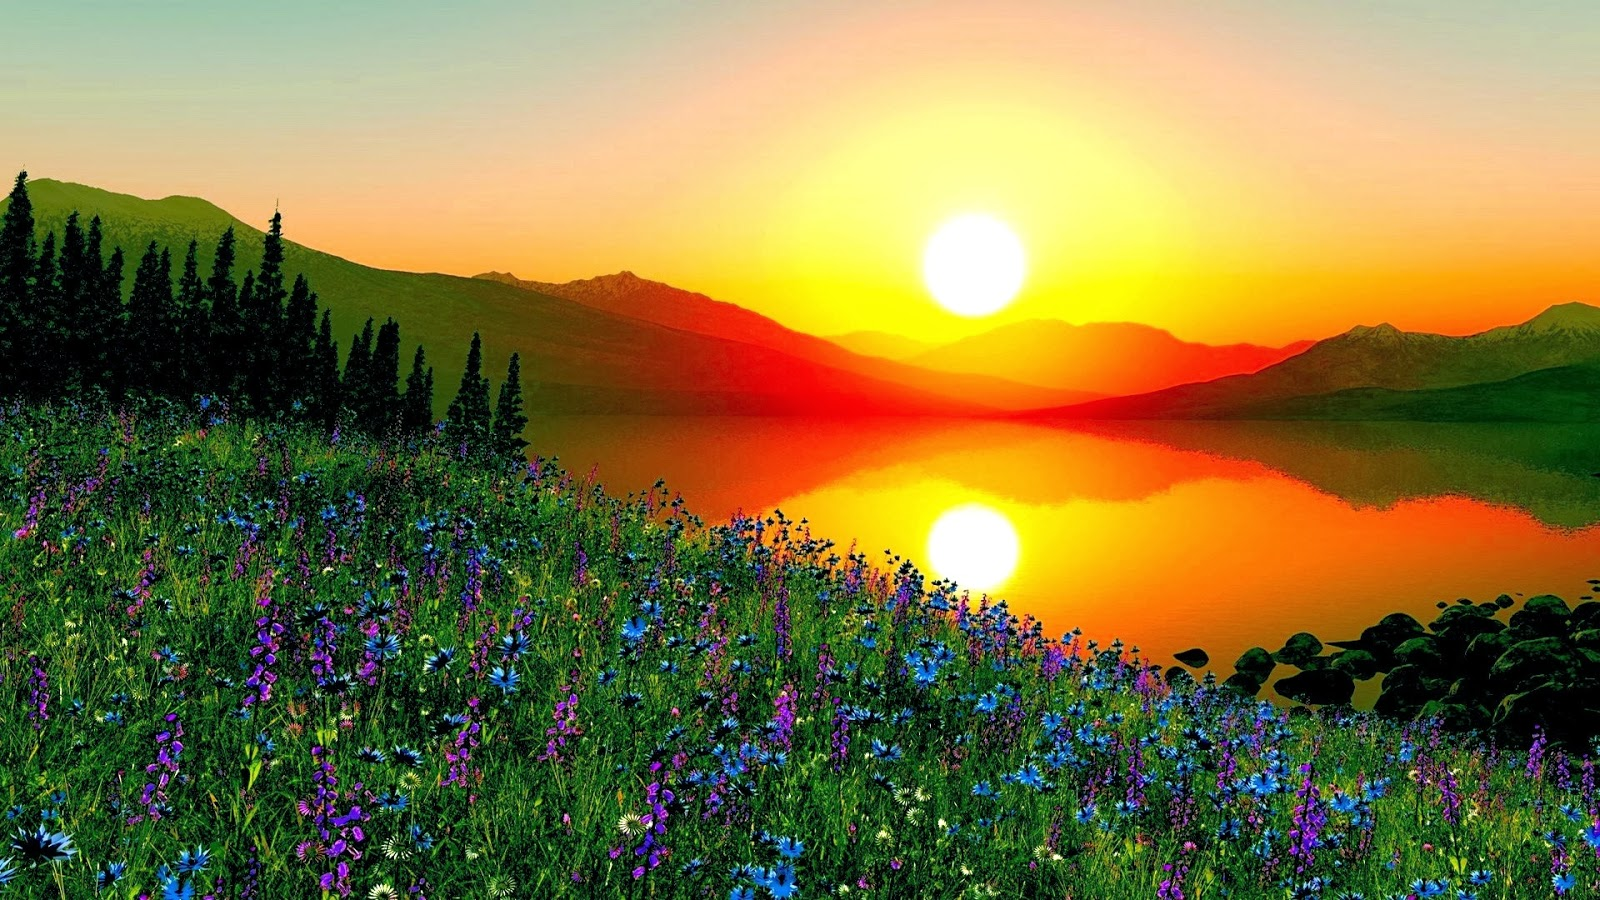 Sunrise Wallpapers  Most beautiful places in the world  Download